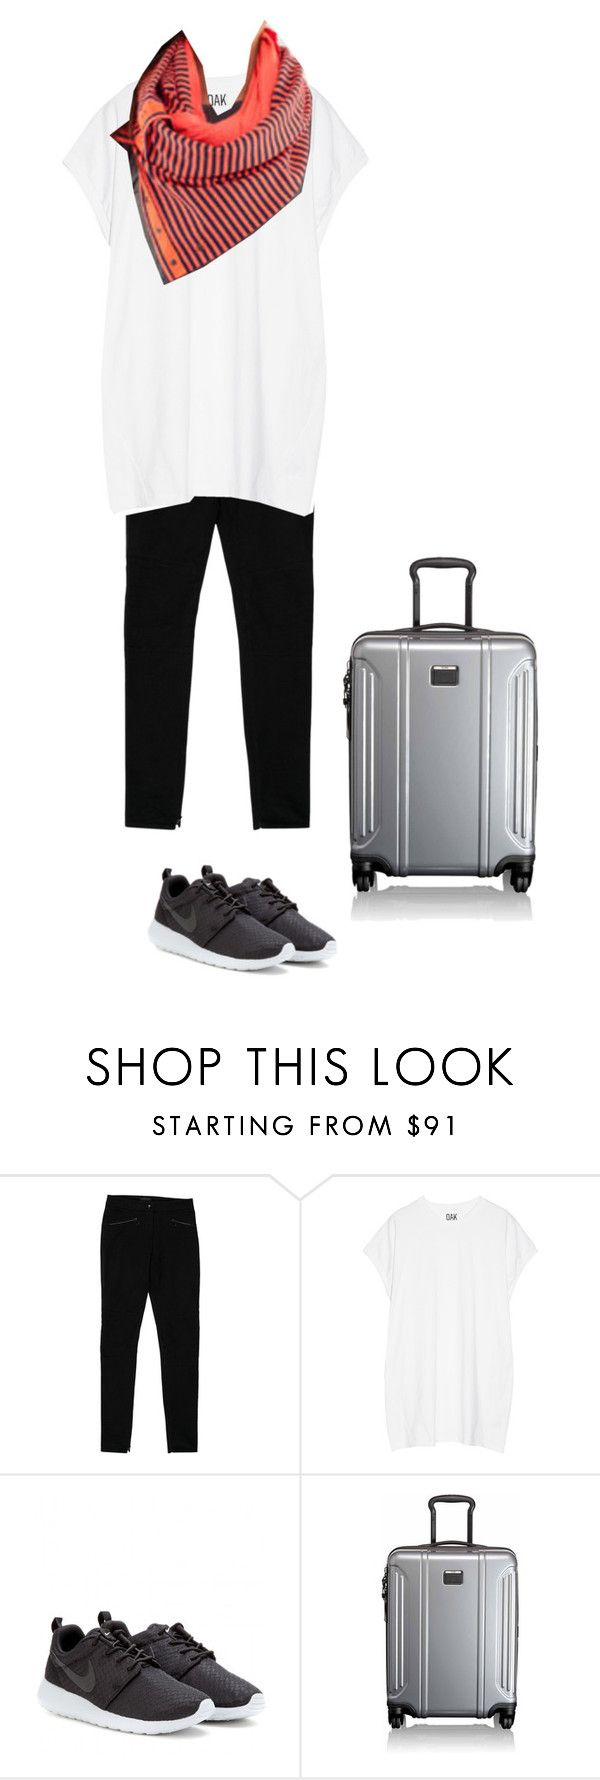 """Warm weather airport outfit - drapey tshirt, Lululemon vinyasa wrap, black leggings, Nikes"" by wrymommy ❤ liked on Polyvore featuring Belstaff, Oak, lululemon, NIKE and Tumi"